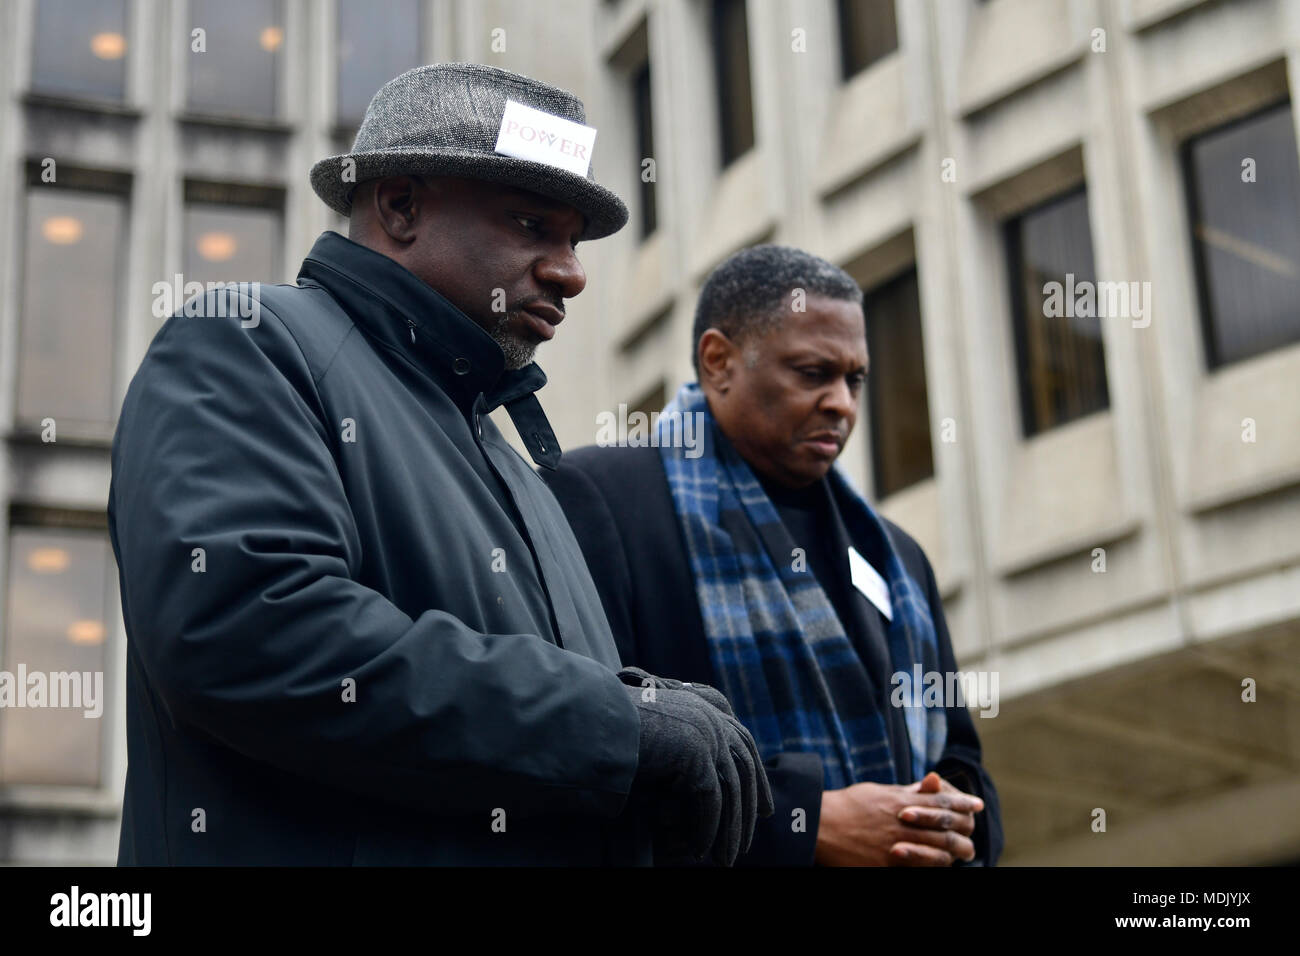 Philadelphia, USA. 19th Apr, 2018. Rev. Mark Tyler and Rev. Greg Holston, Executive Director of Philadelphians Organized to Witness, Empower and Rebuild (POWER), bow heads in prayer at a Police Accountability rally hosted by POWER outside Police Dept. headquarters in center City Philadelphia, PA, on April19, 2018. Credit: Bastiaan Slabbers/Alamy Live News Stock Photo